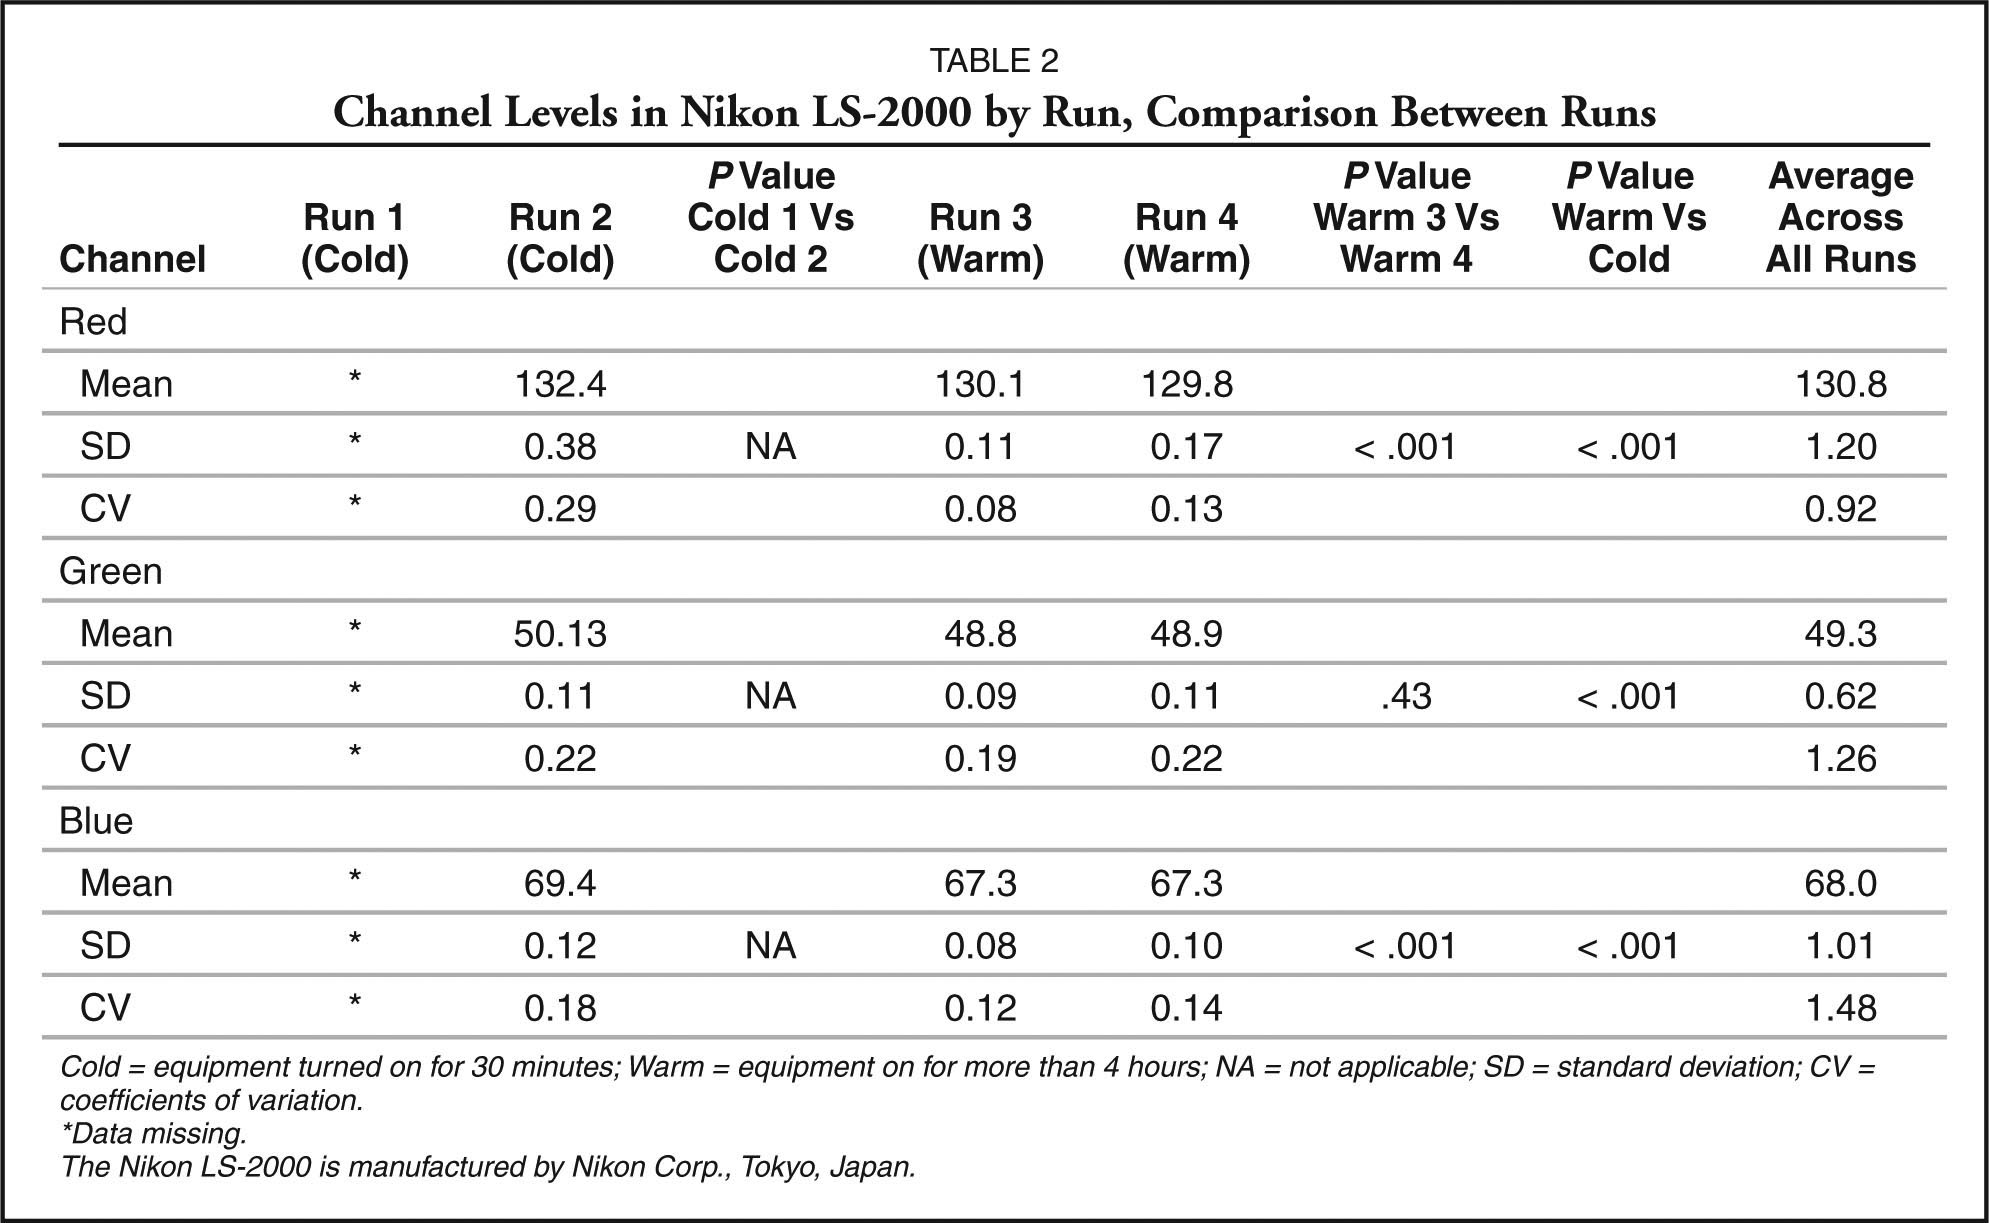 Channel Levels in Nikon LS-2000 by Run, Comparison Between Runs